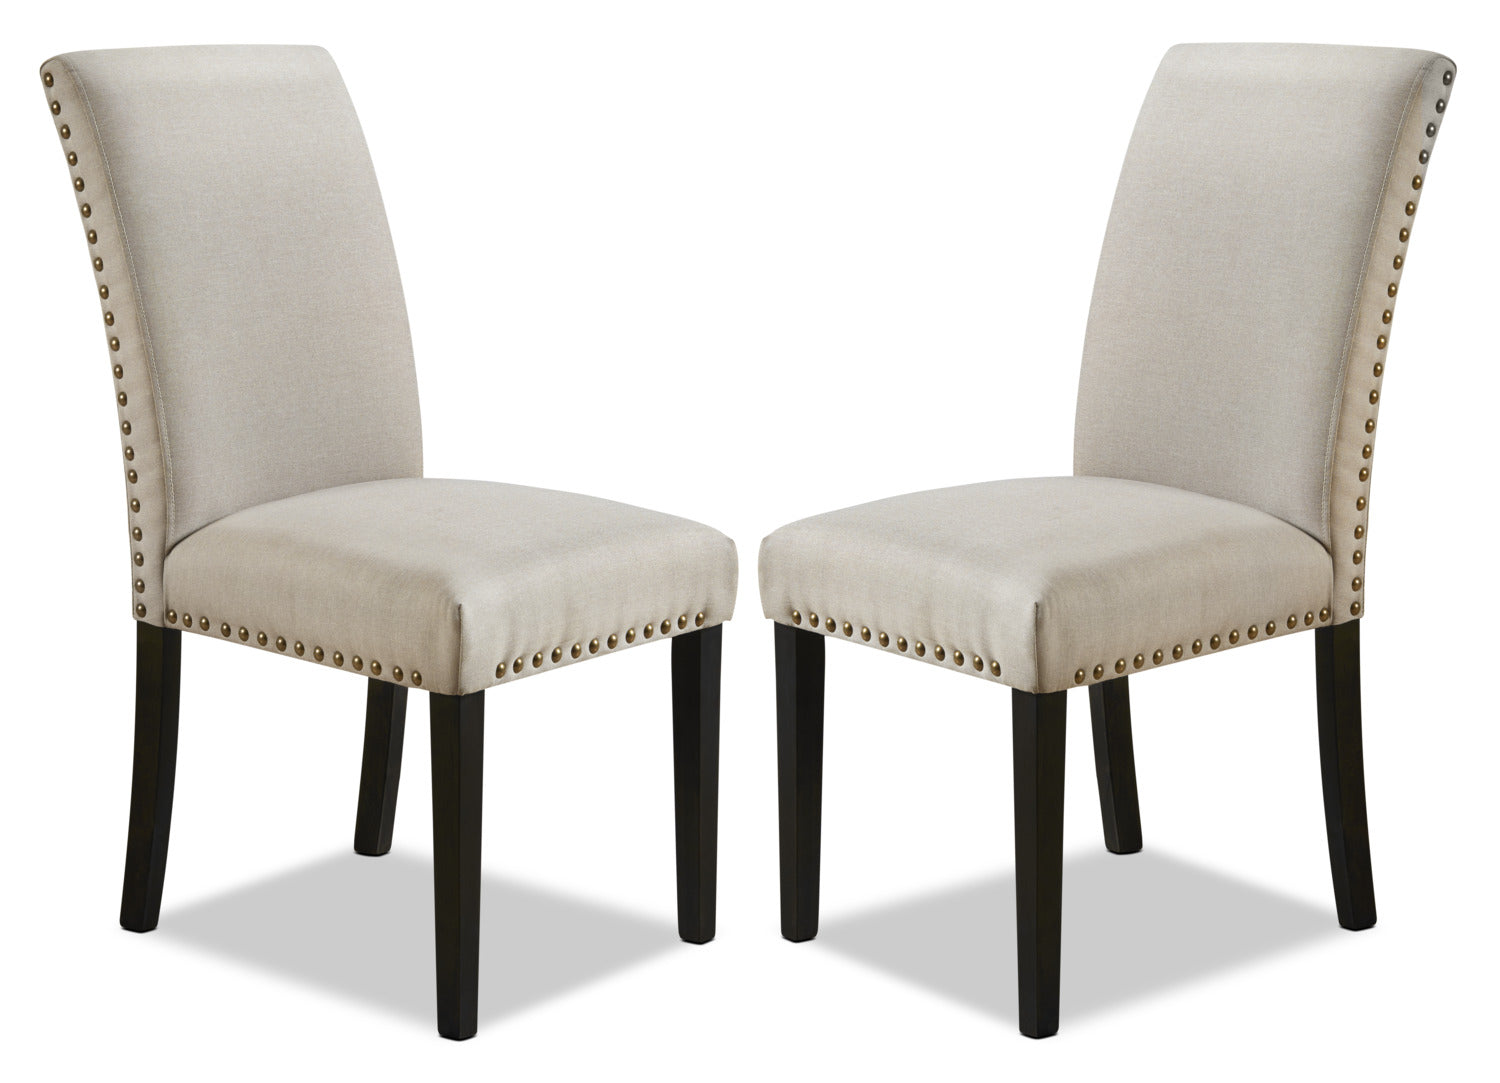 york studded dining chair set of 2 beigechaise de salle manger york avec clous dcoratifs ensemble de 2 beige